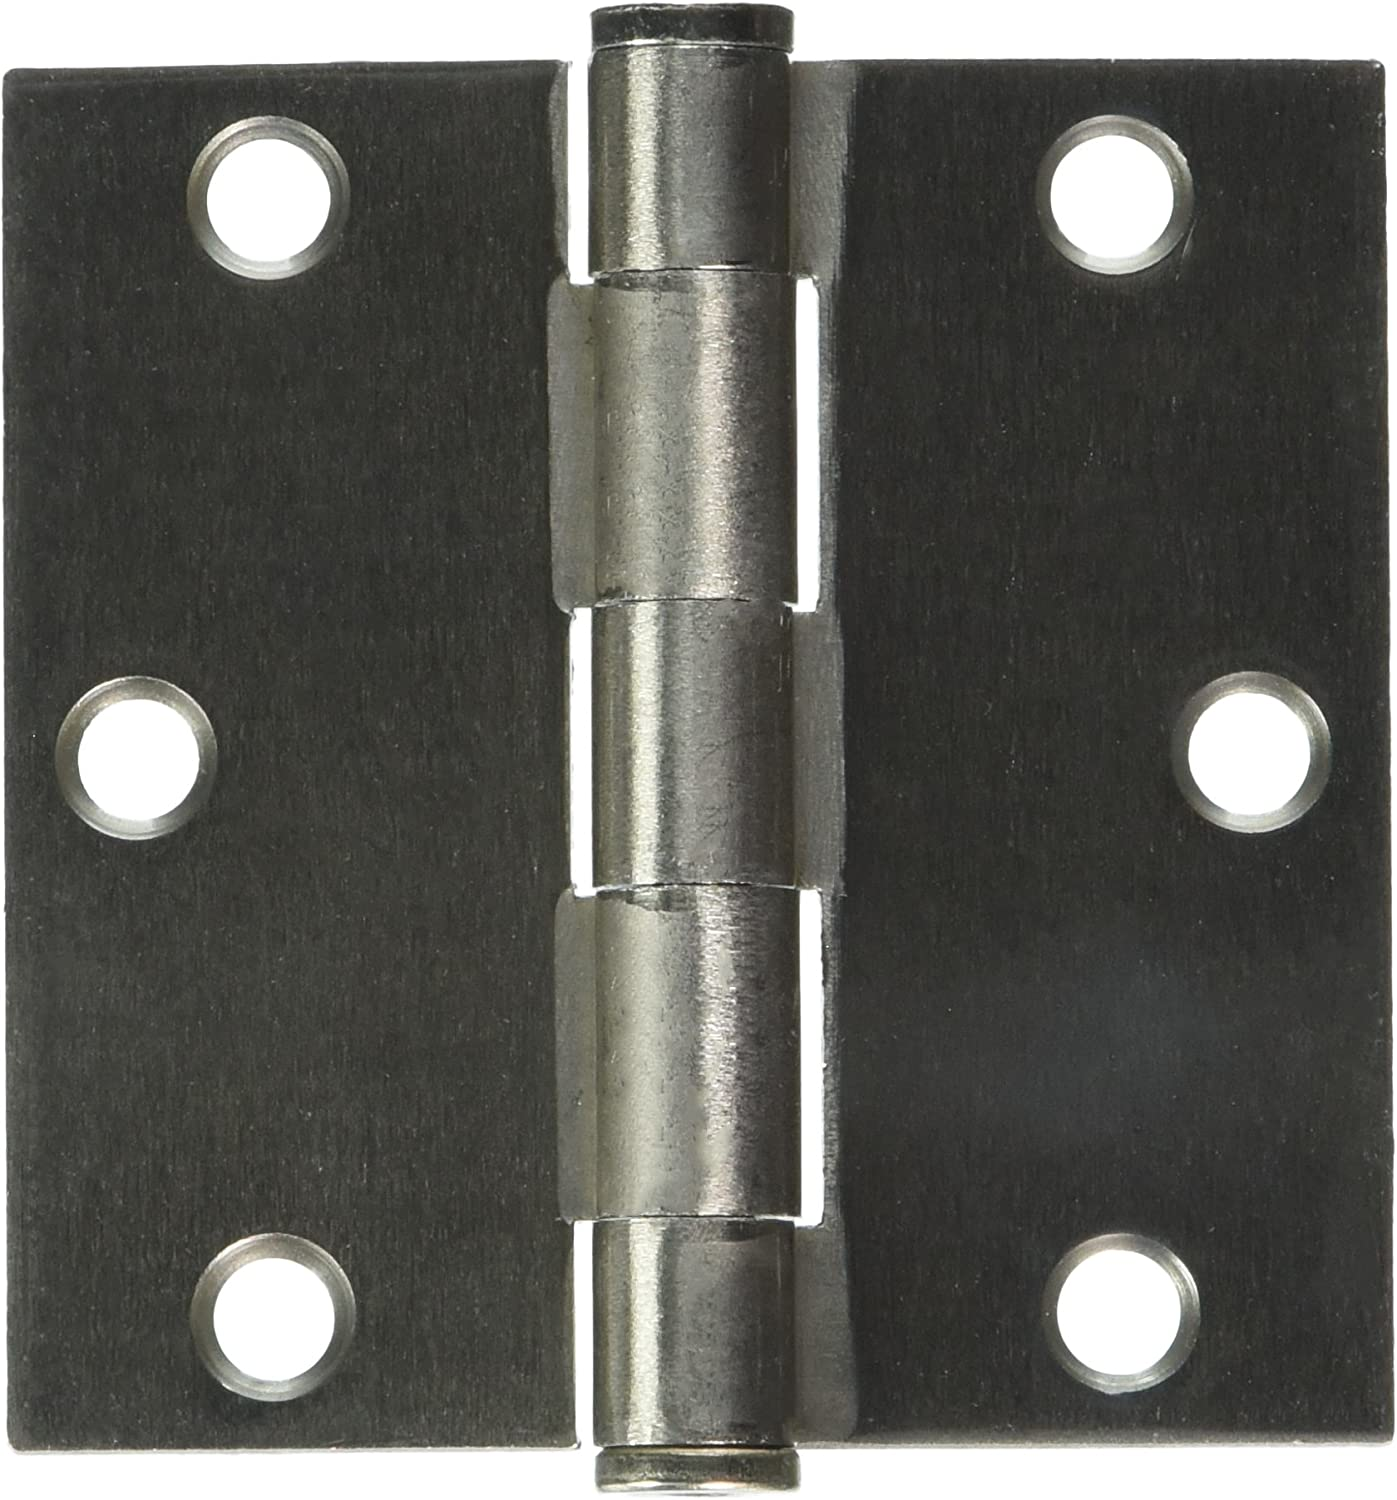 Deltana S35HD3 HD Value Choice for Indoor Applications Steel 3 1//2-Inch x 3 1//2-Inch Square Hinge